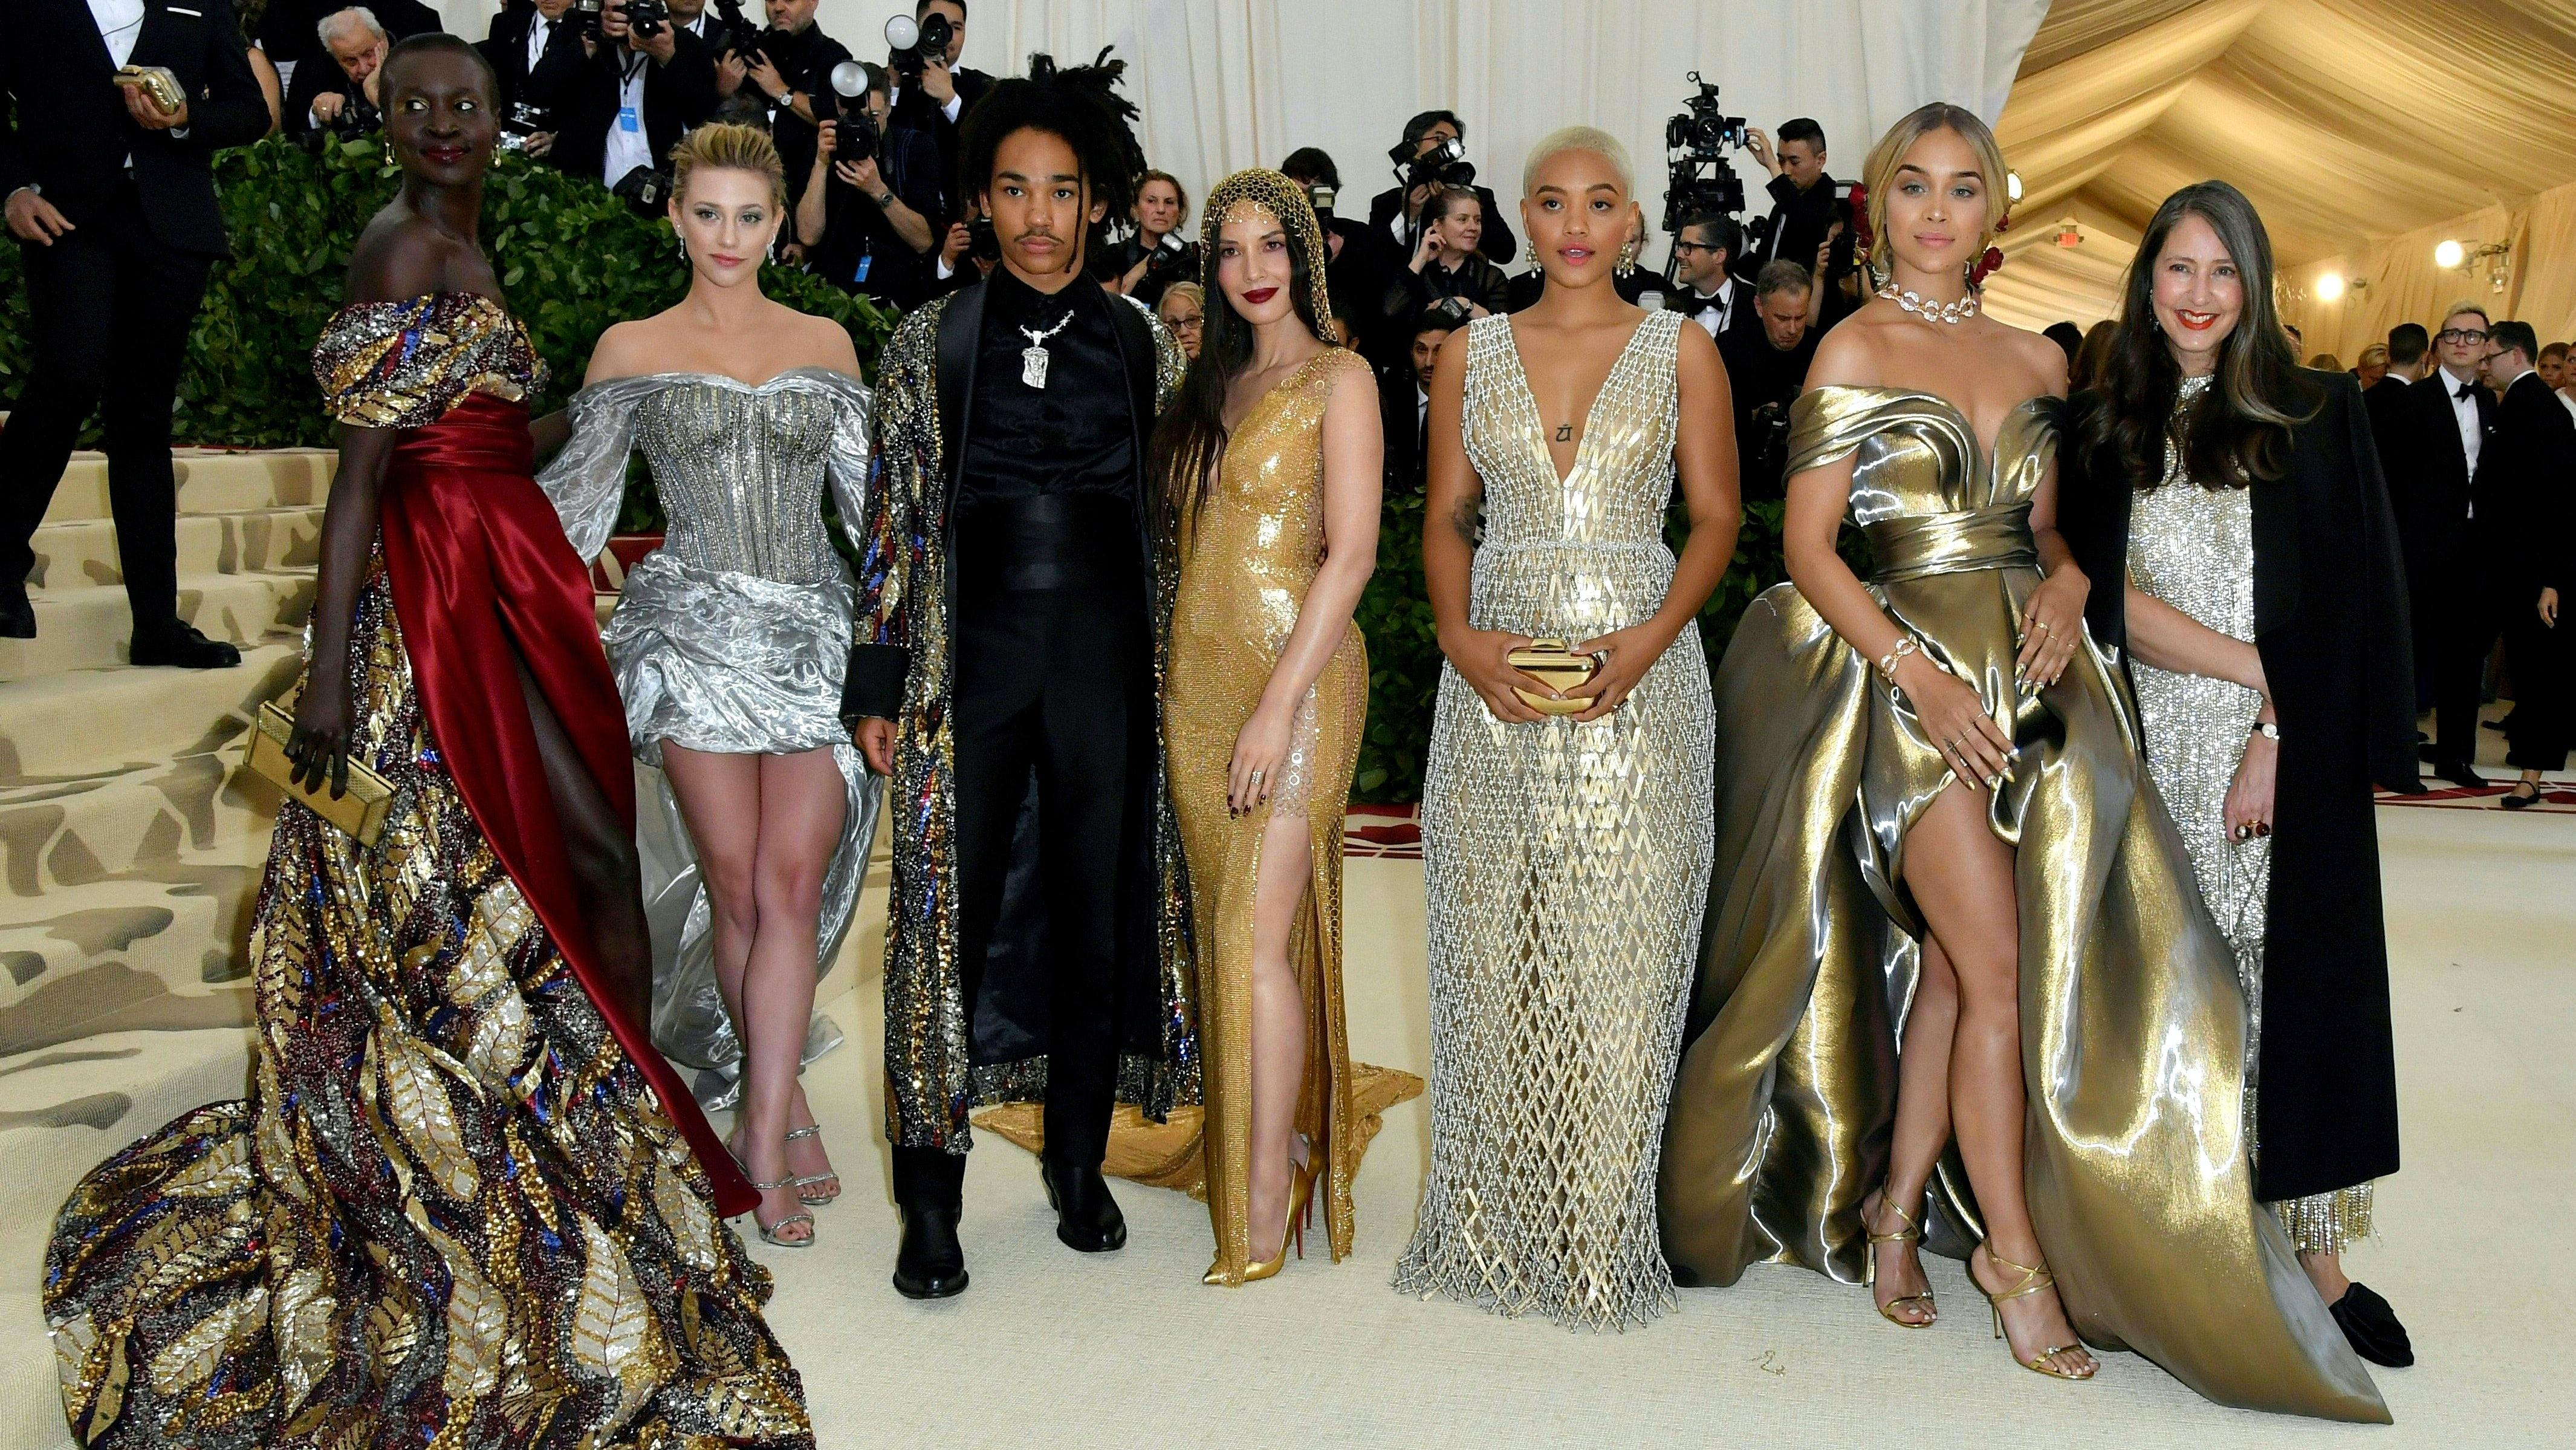 Alek Wek, Lili Reinhart, Luka Sabbat, Olivia Munn, Kiersey Clemons,  Jasmine Sanders, and H&M's Ann-Sofie Johansson at the Met Gala | Source: Angela Weiss/Getty Images